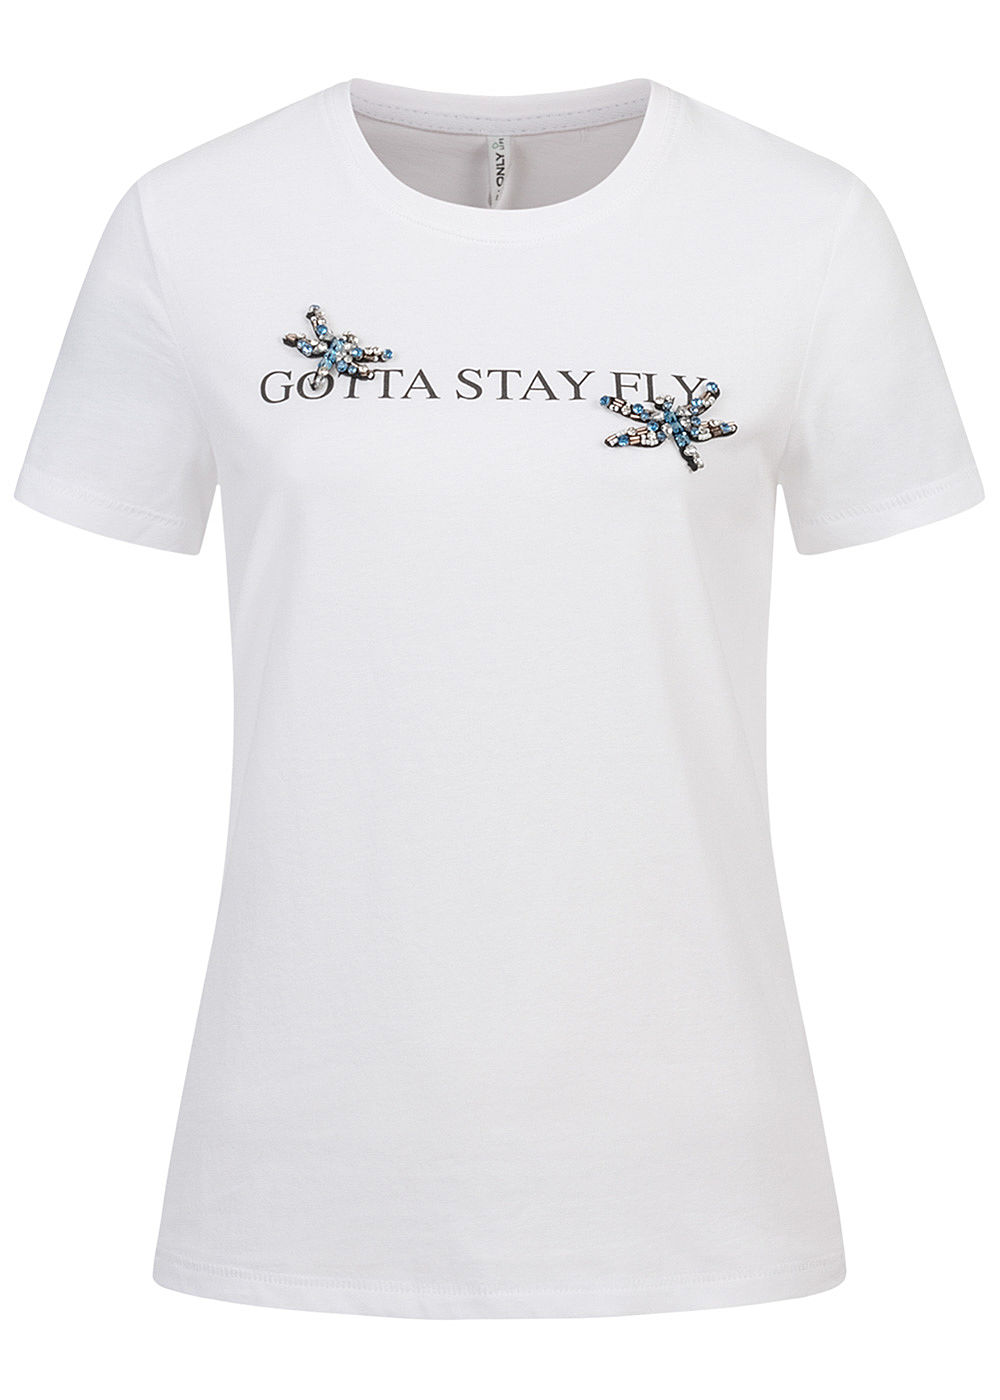 ONLY Damen T-Shirt Stay Fly Print mit Schmuckapplikationen bright weiss - Art.-Nr.: 20094372